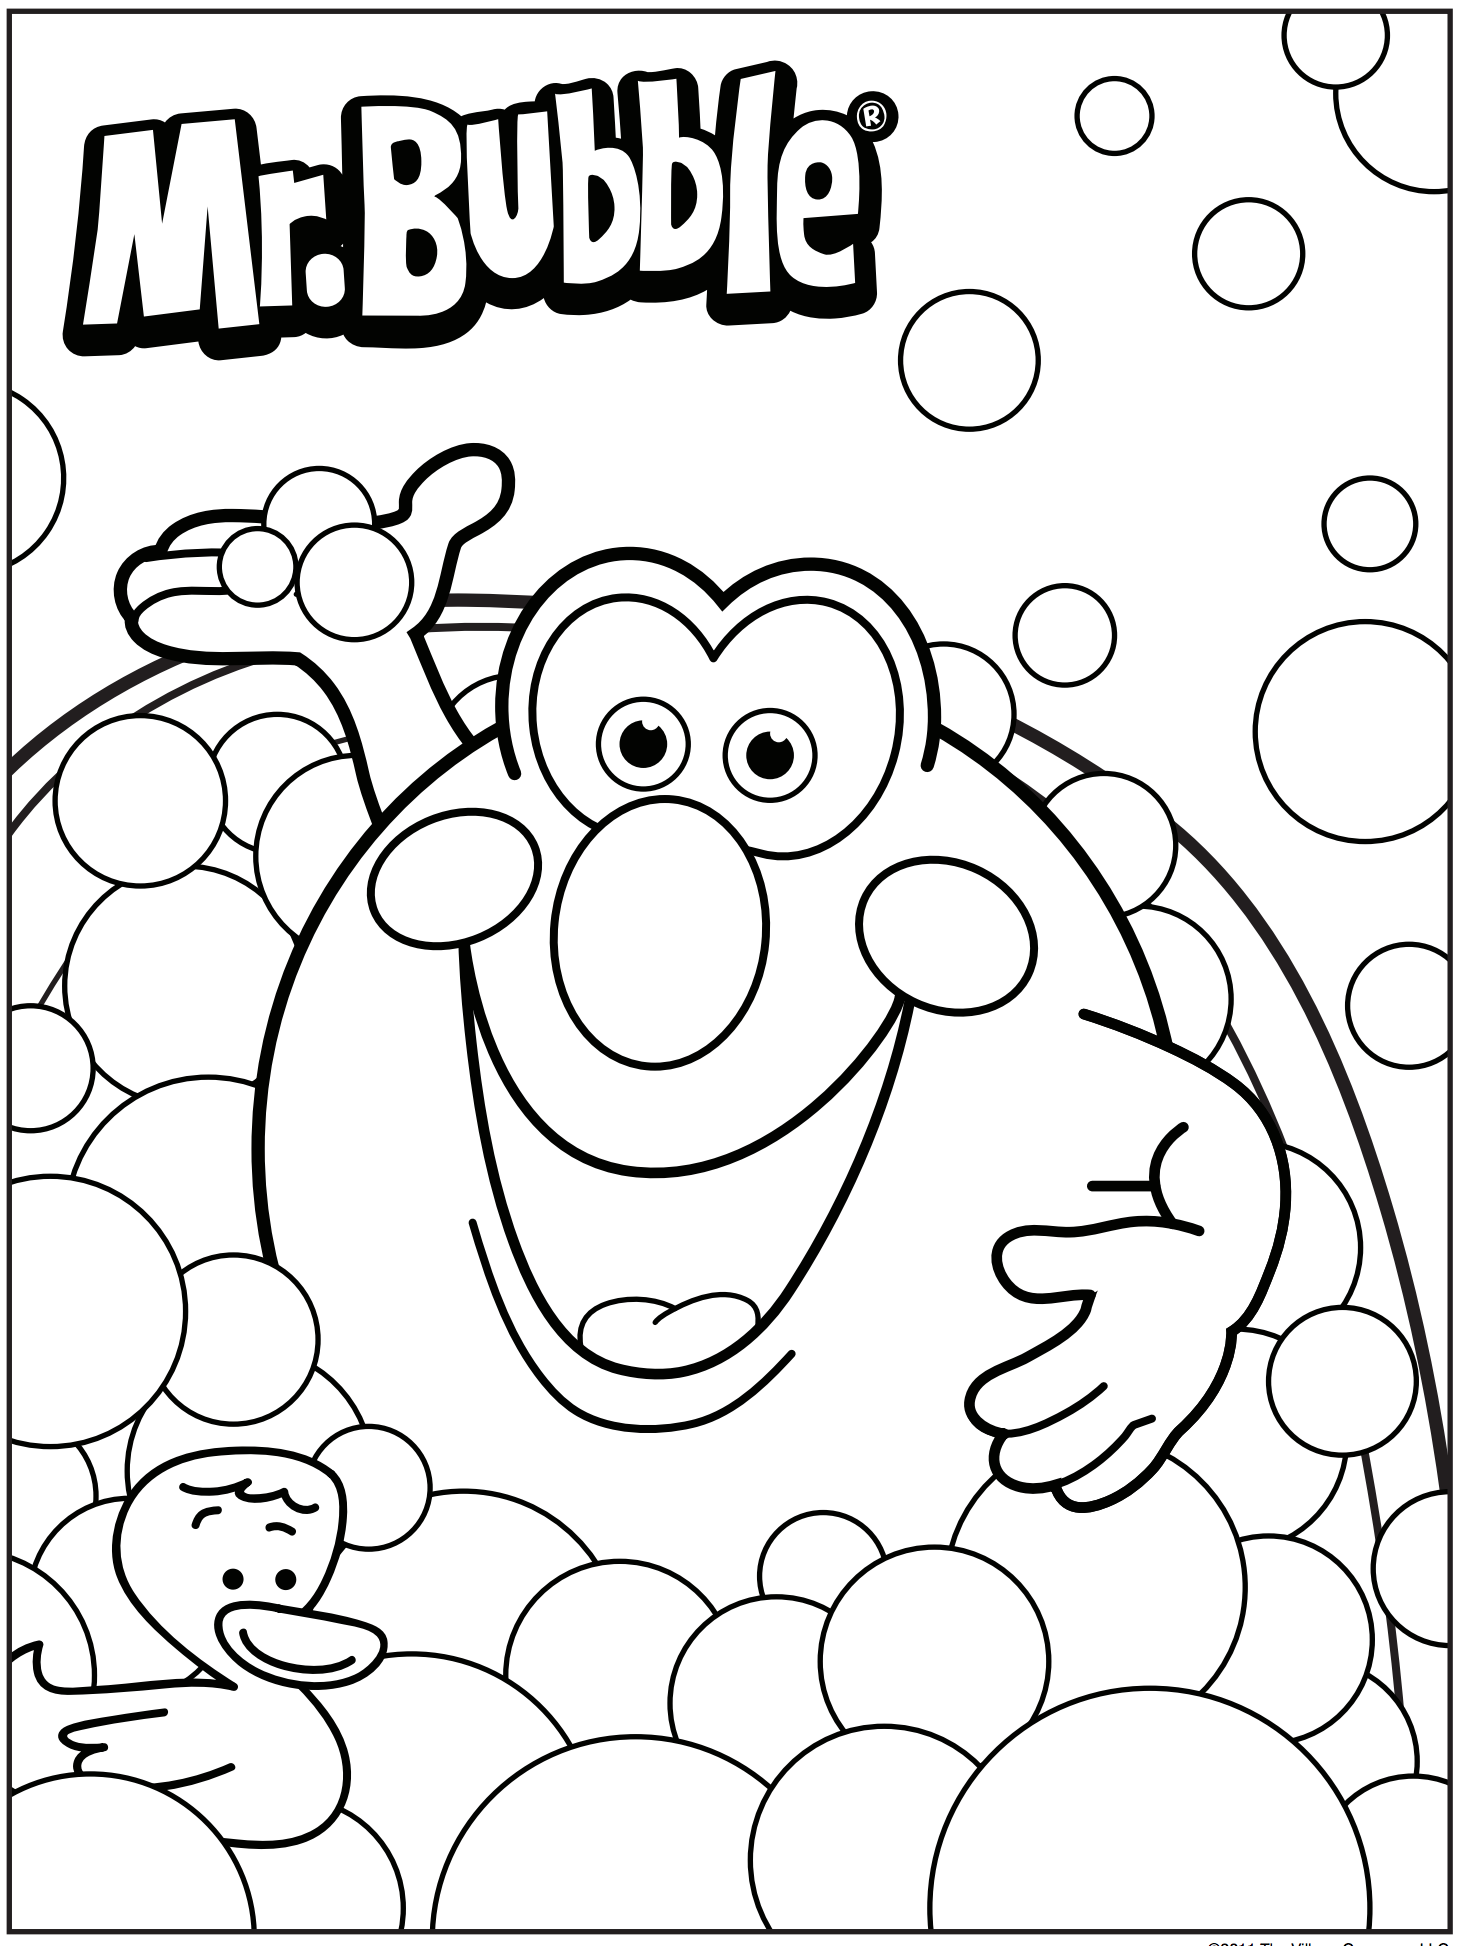 fun colouring pages for kids summer fun printable coloring pages coloring home kids for pages fun colouring